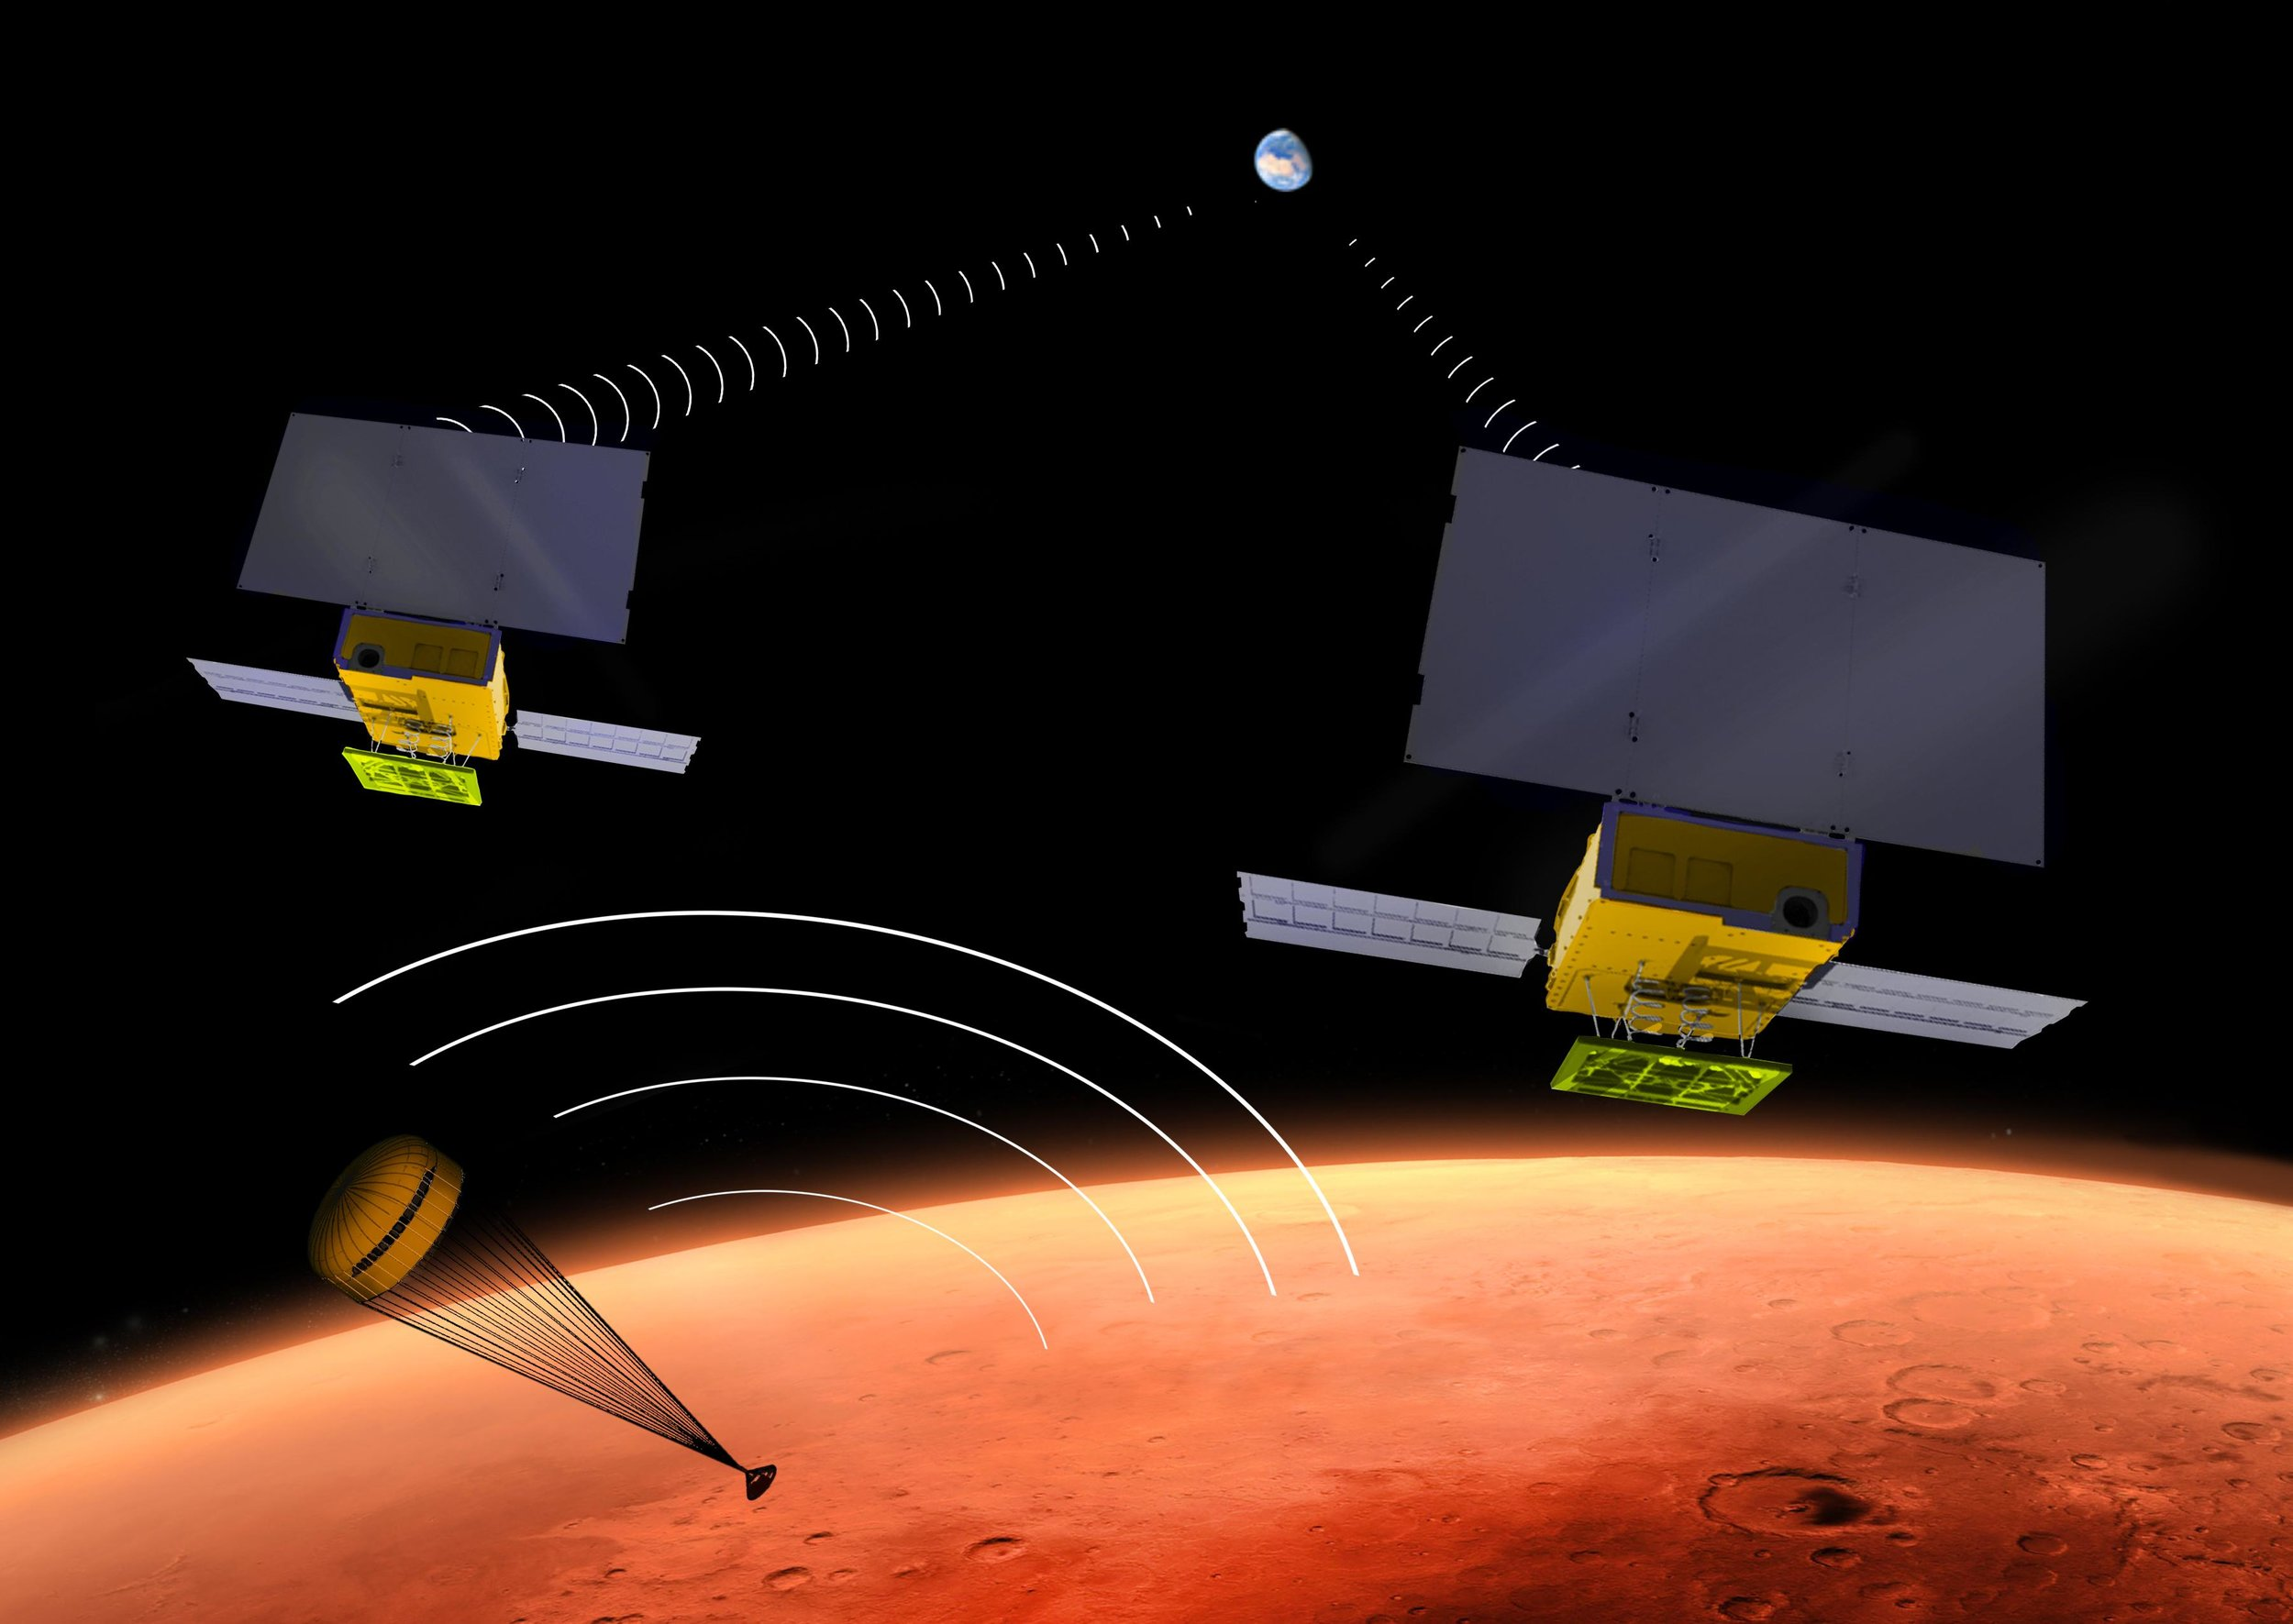 An artist's rendering of MarCO A and B during the descent of InSight. – Image Credit: NASA/JPL-Caltech